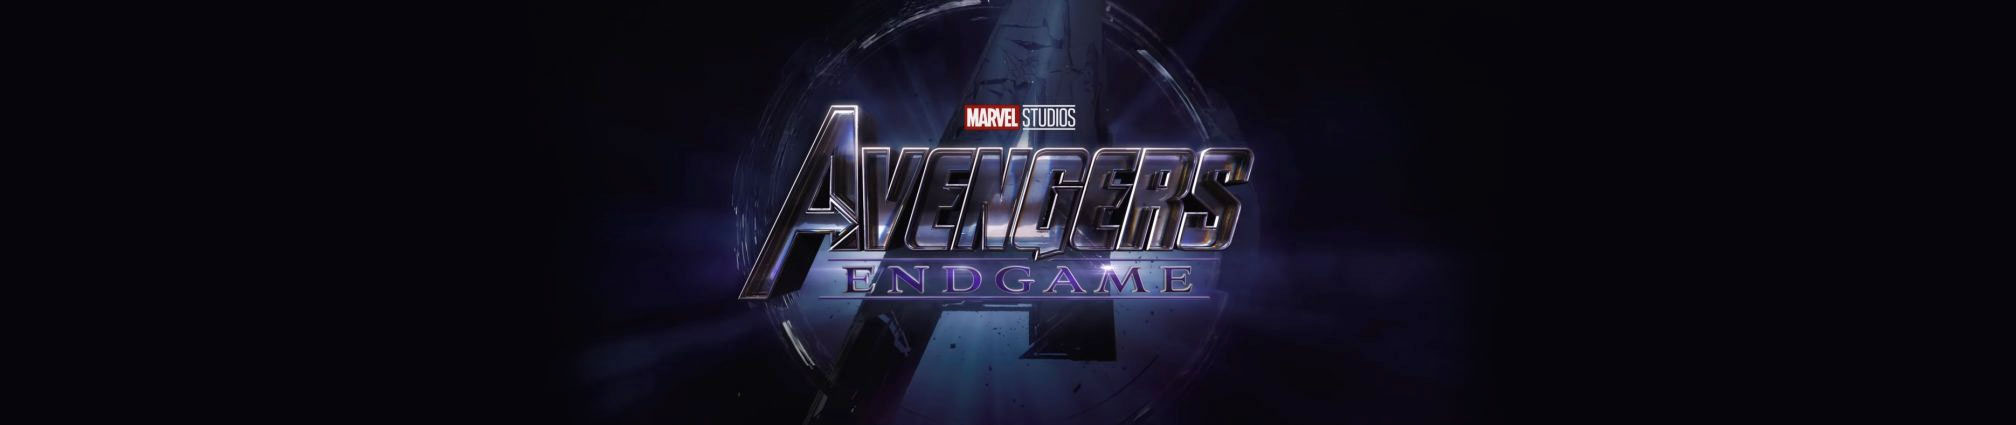 Avengers Endgame Merchandise and Clothing Page